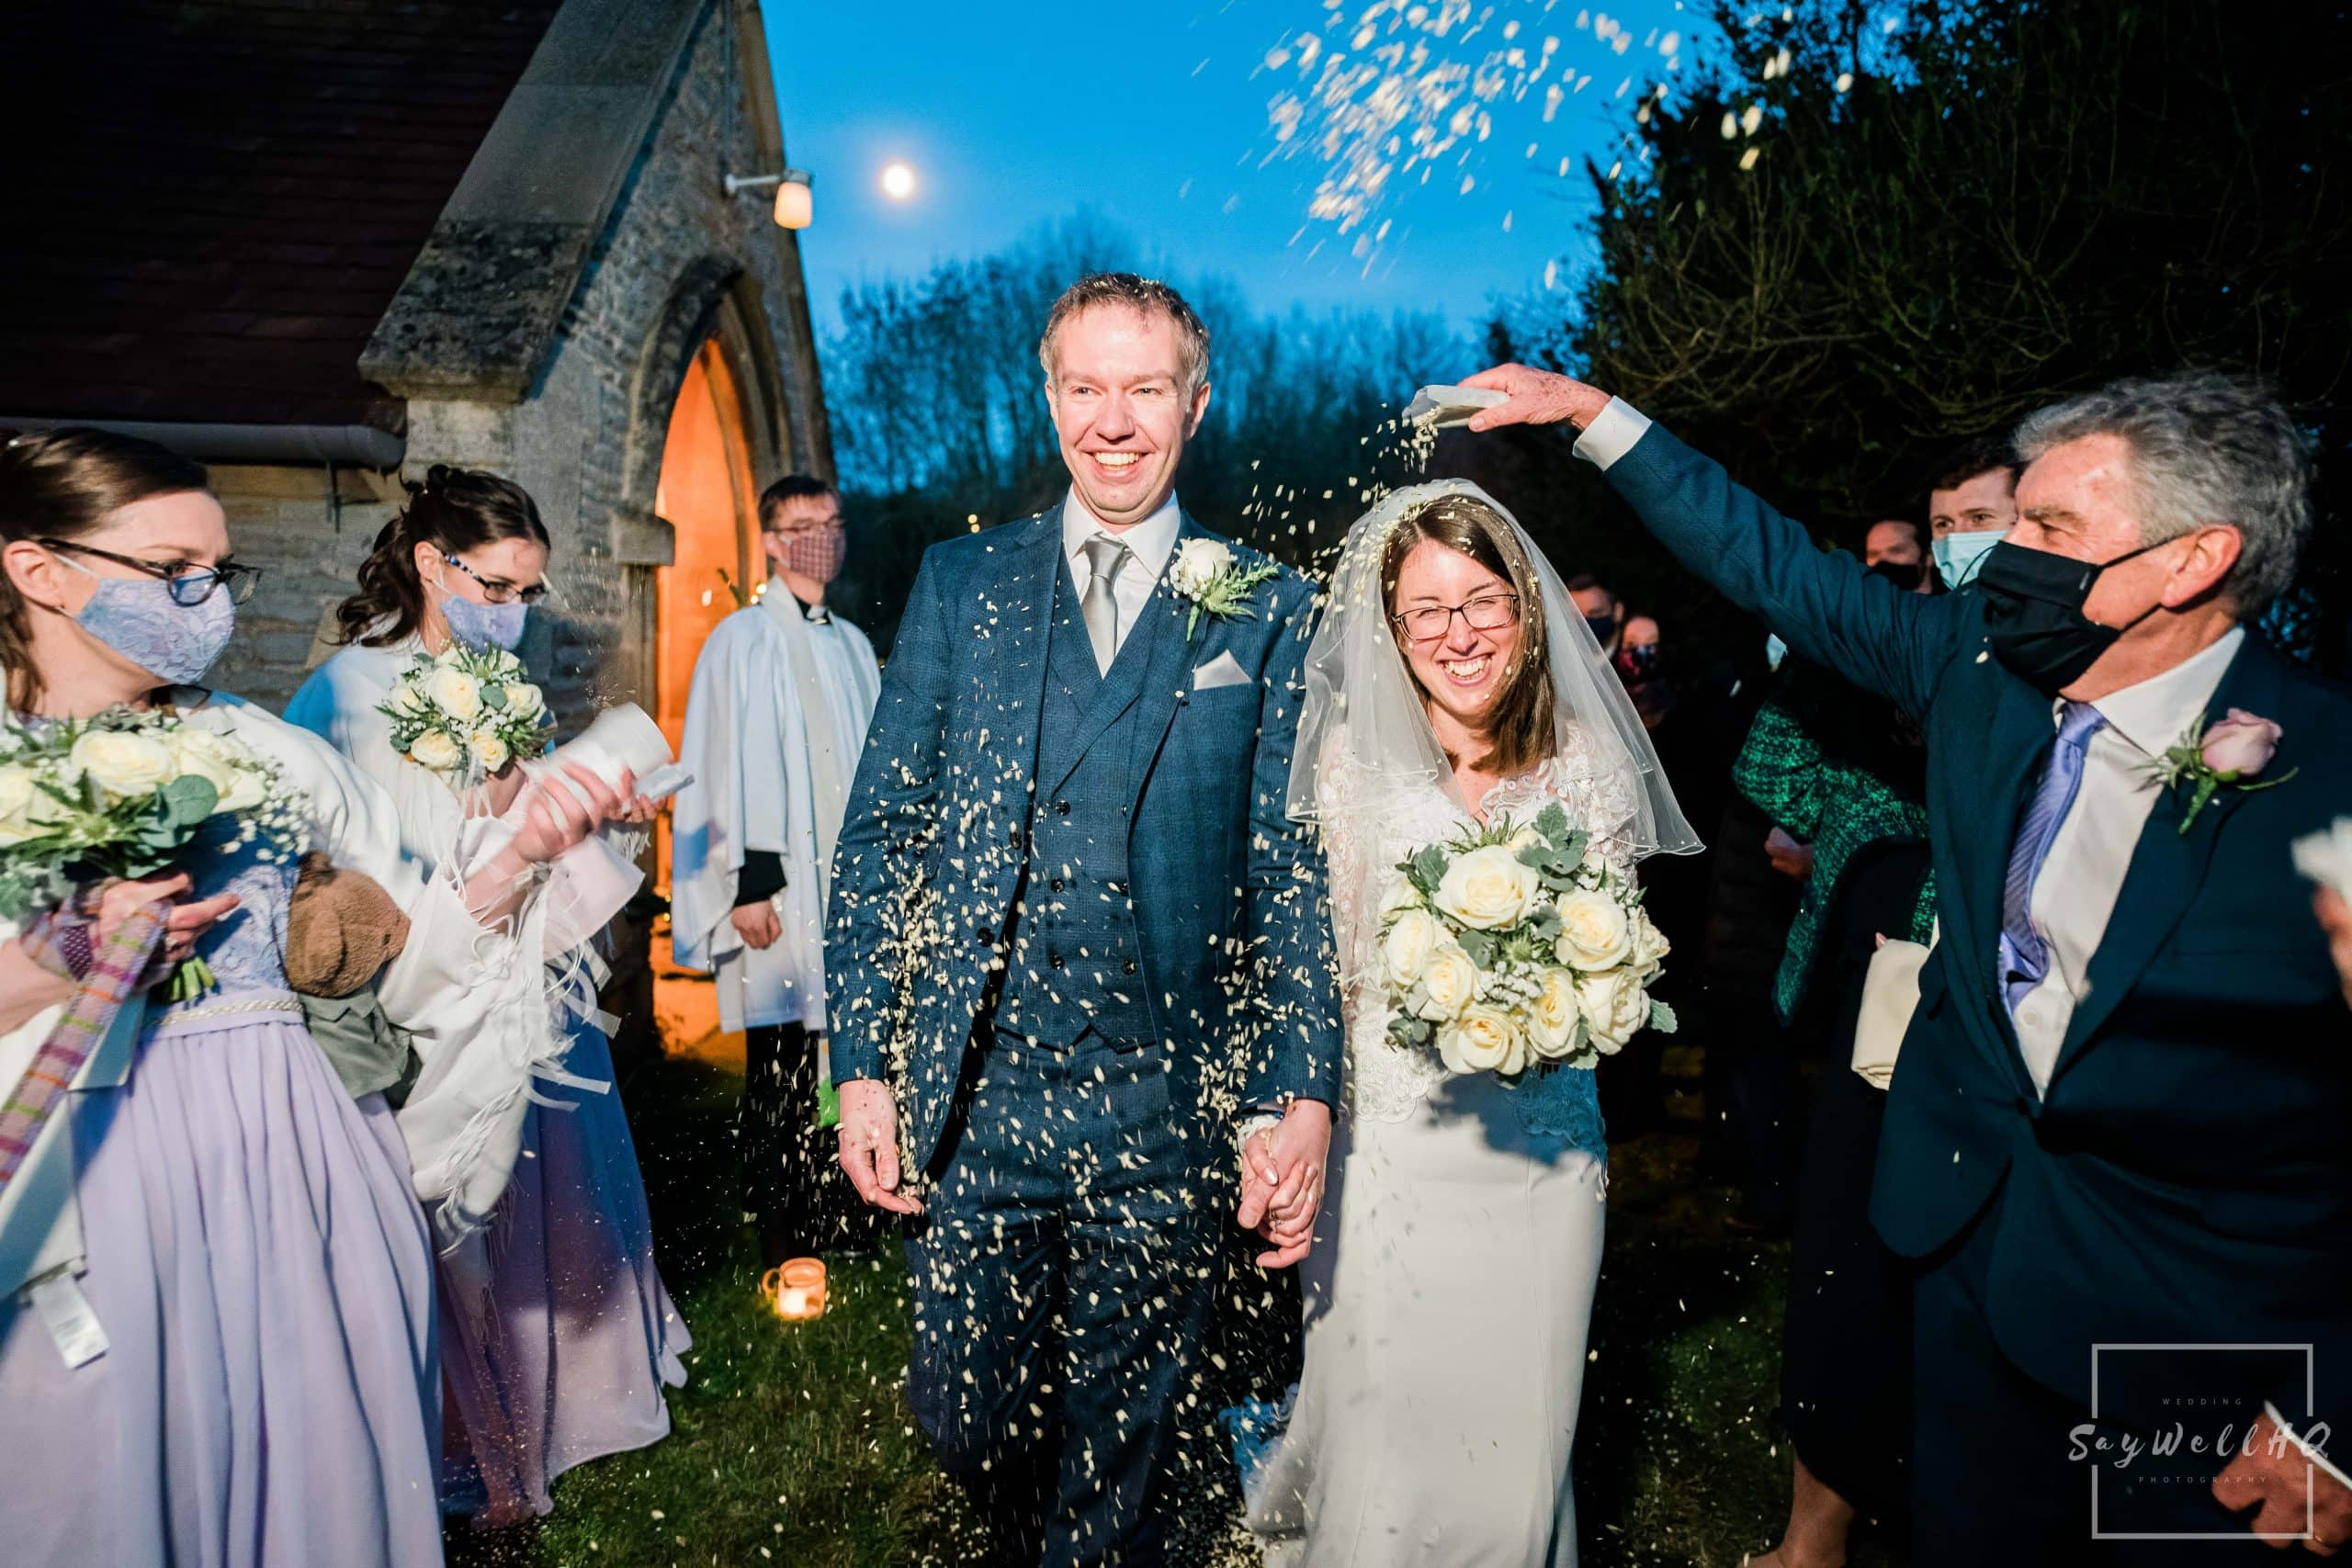 Bride and Groom getting covered in confetti when leaving their wedding ceremony at St. Helena Church in Thoroton - Vale of Belvoir wedding photography